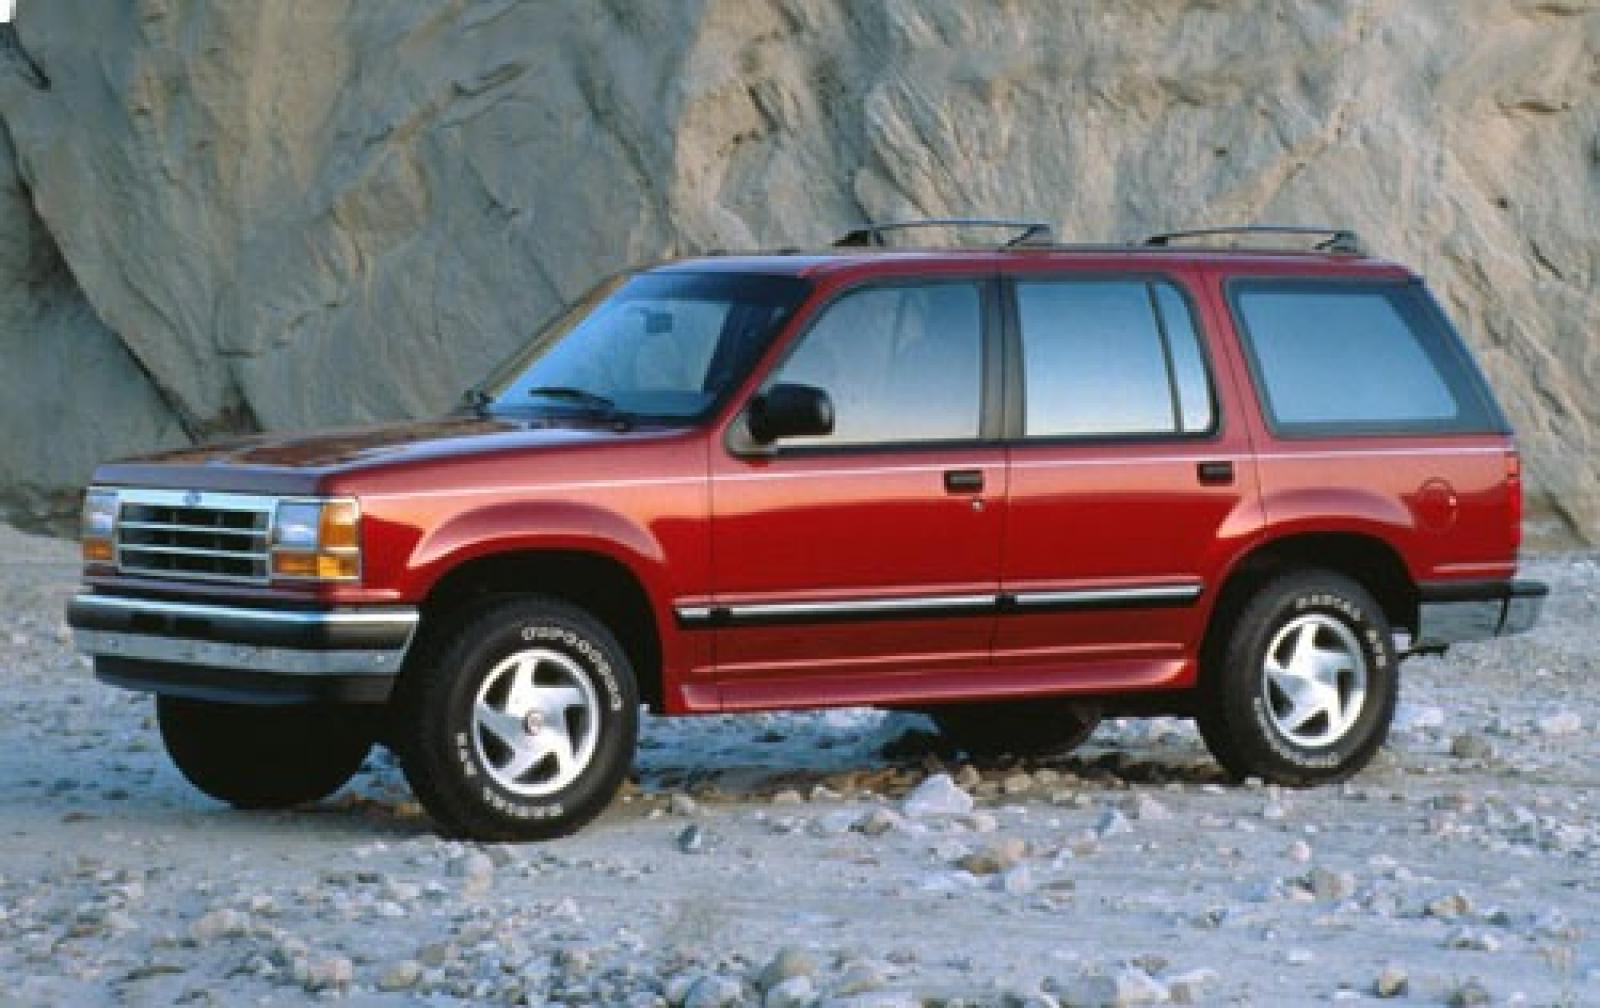 1993 ford explorer information and photos zombiedrive. Black Bedroom Furniture Sets. Home Design Ideas